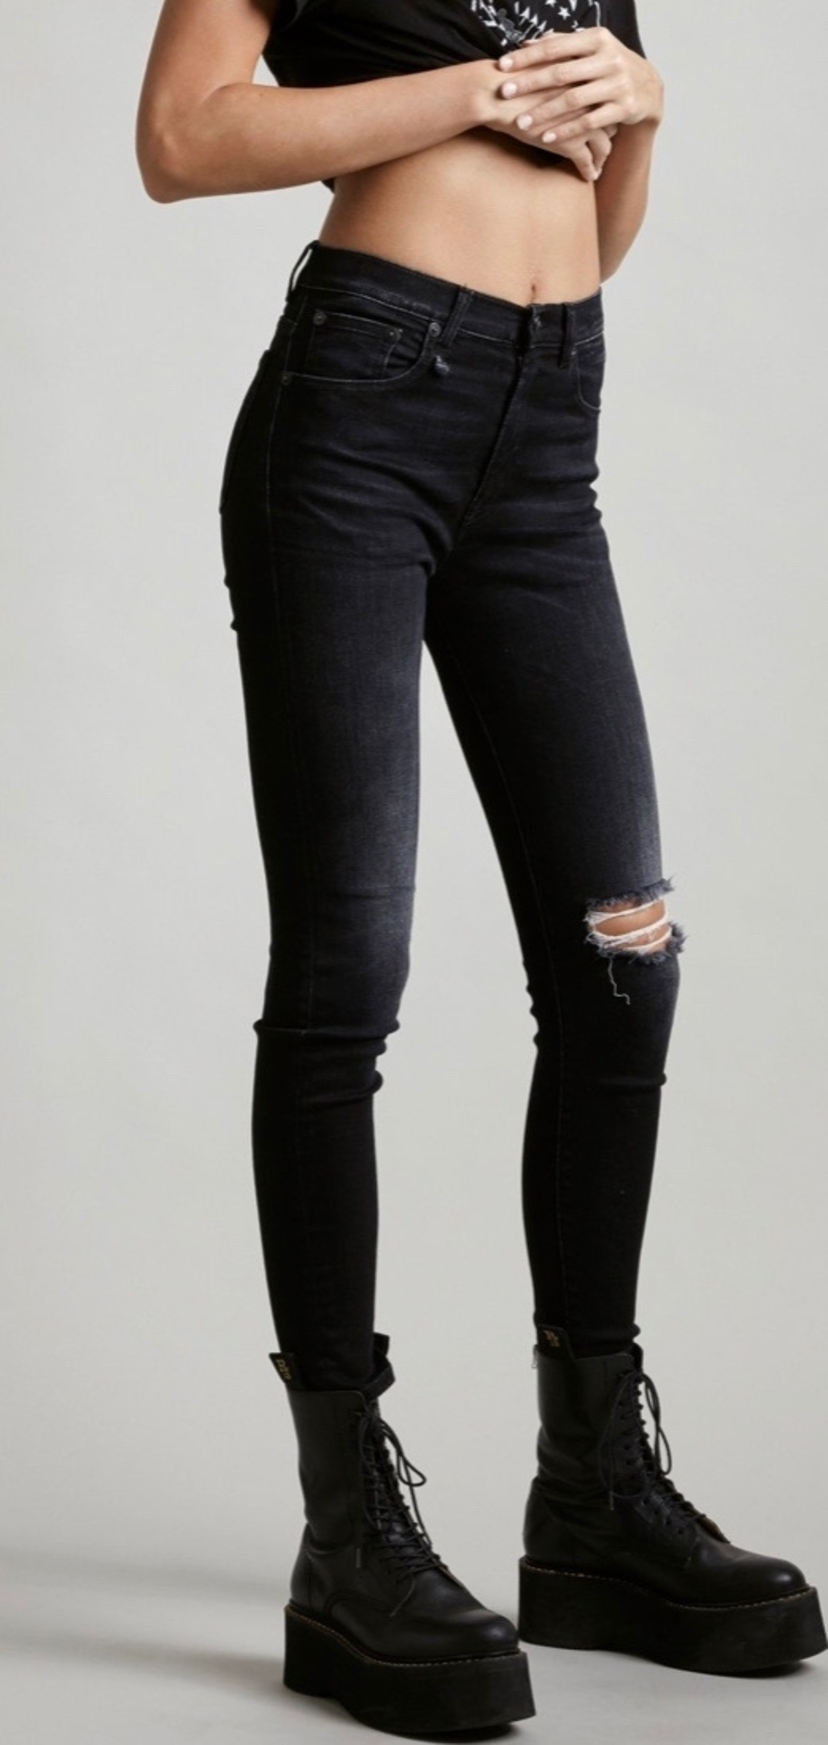 R13 High Rise Skinny Jean Pants